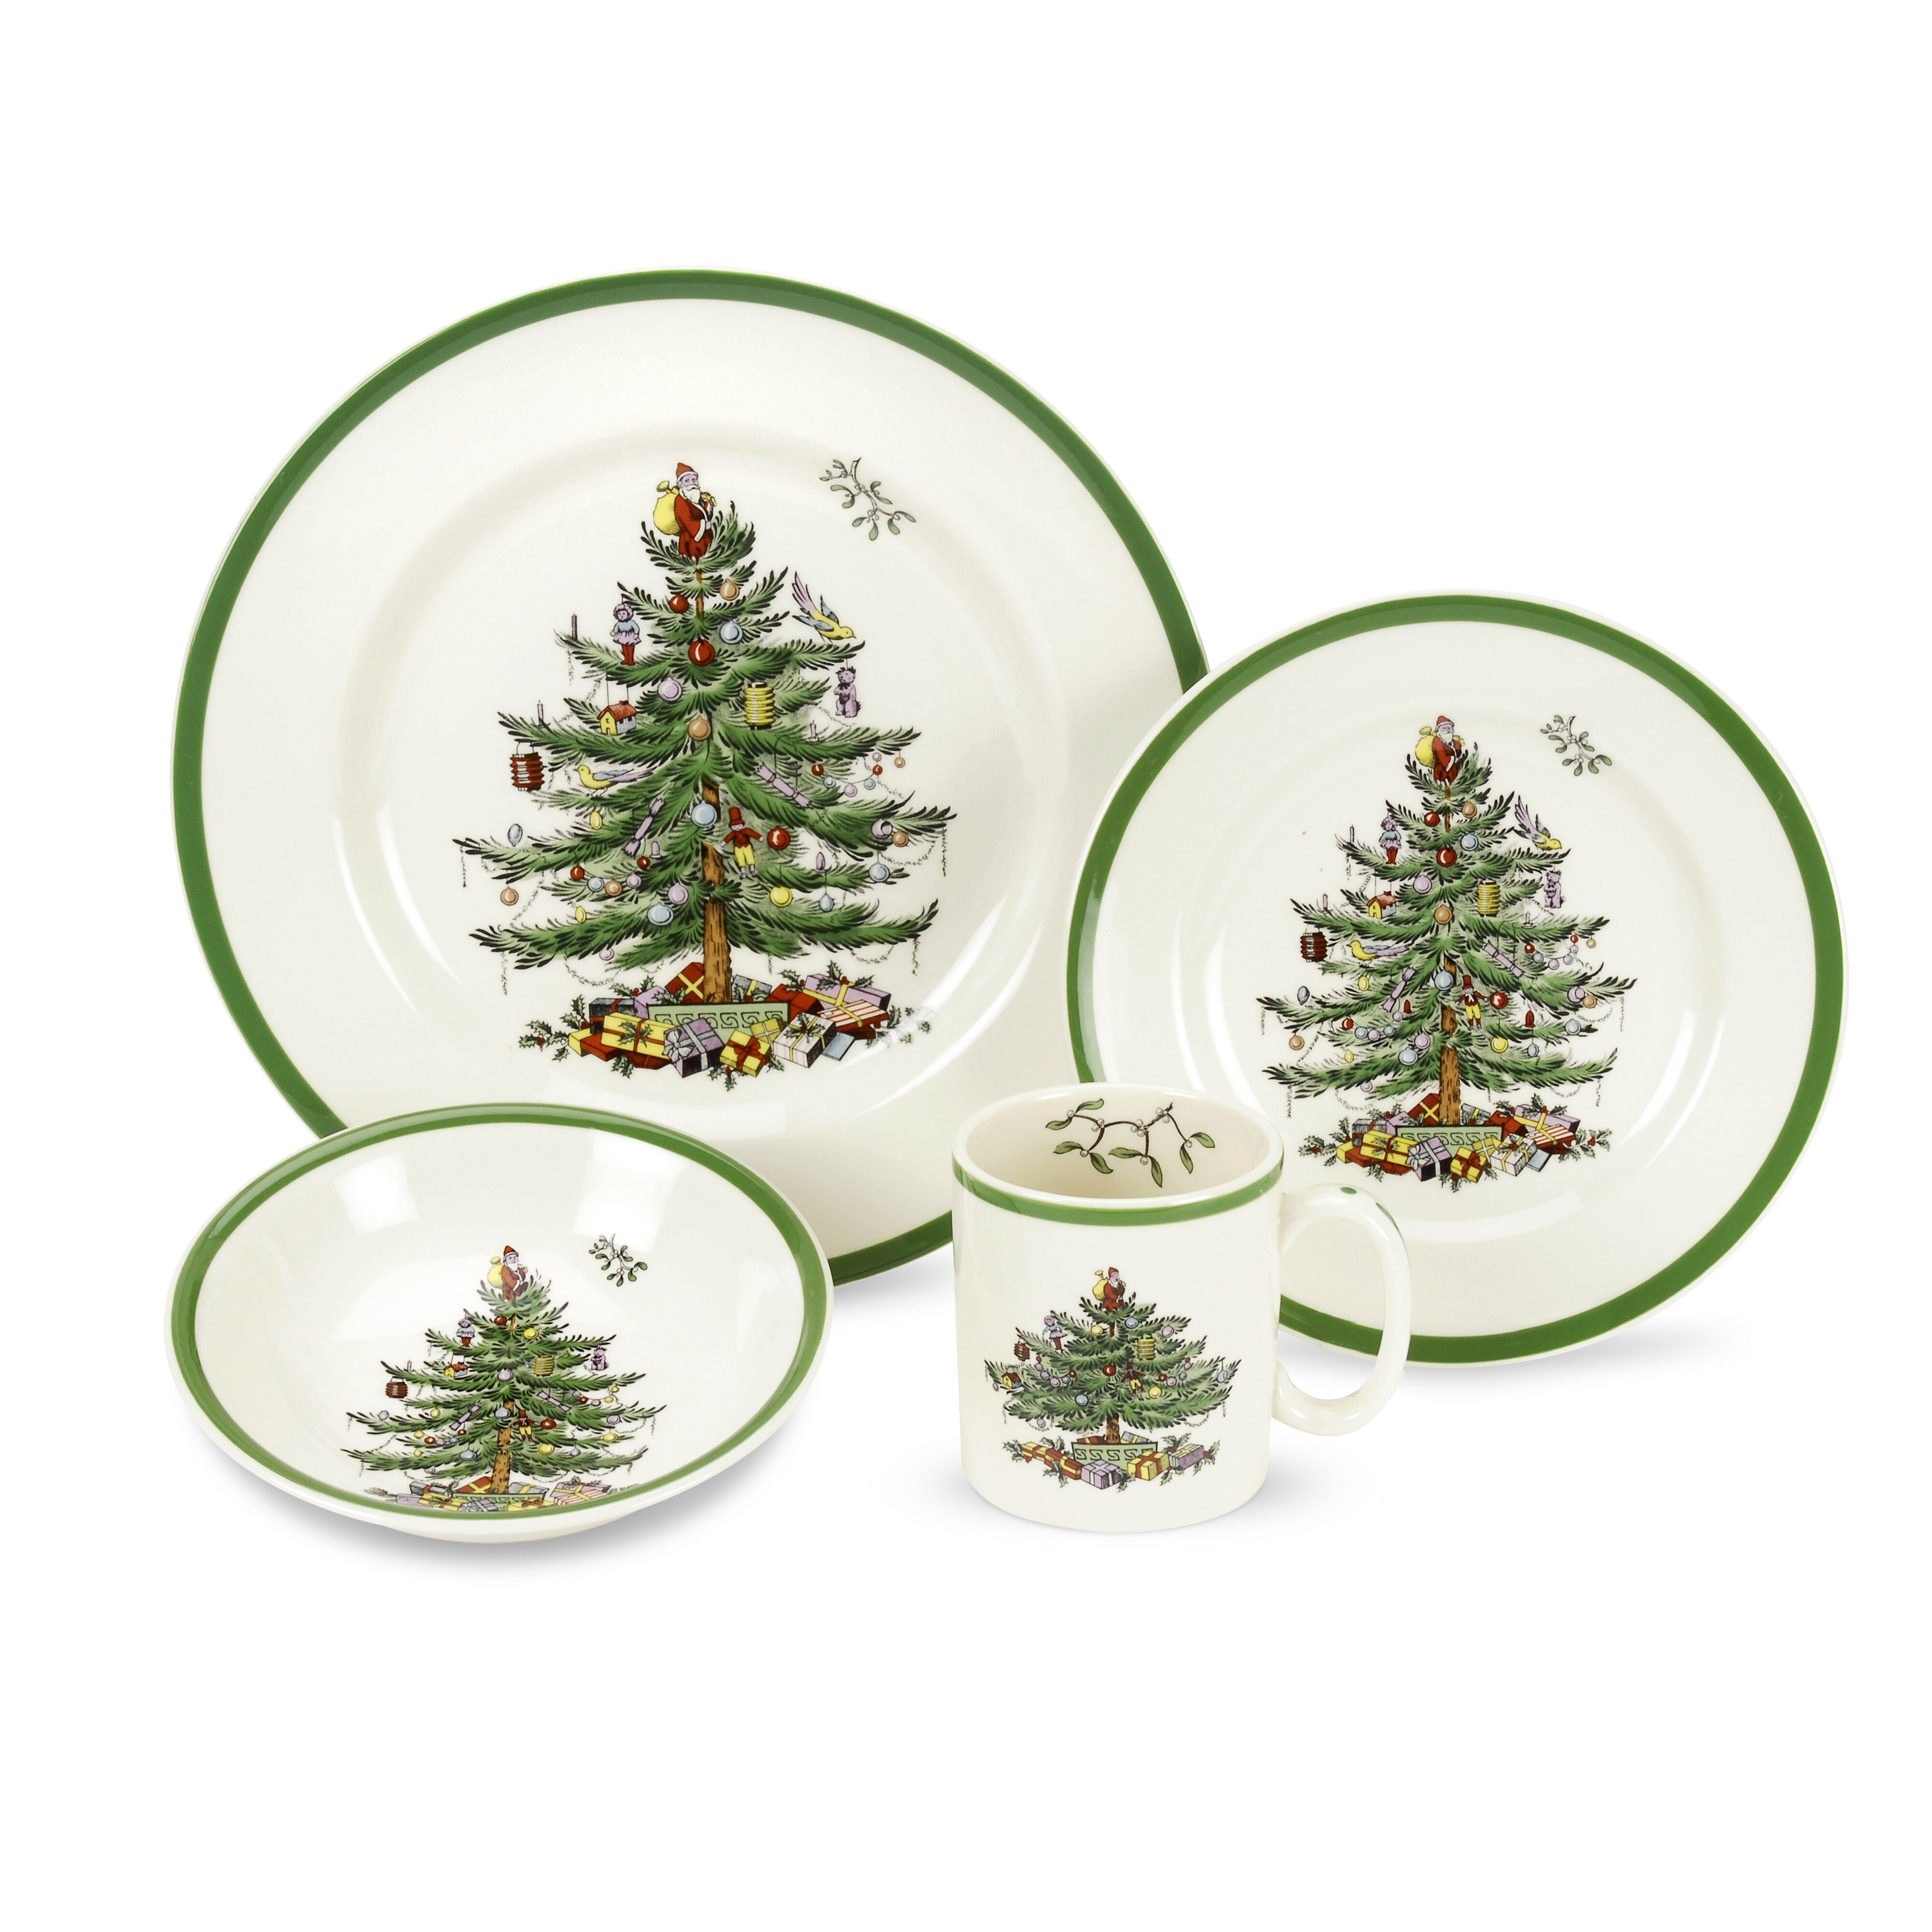 Spode Christmas Tree Sale: Spode Christmas Tree 4 Piece Place Setting & Reviews